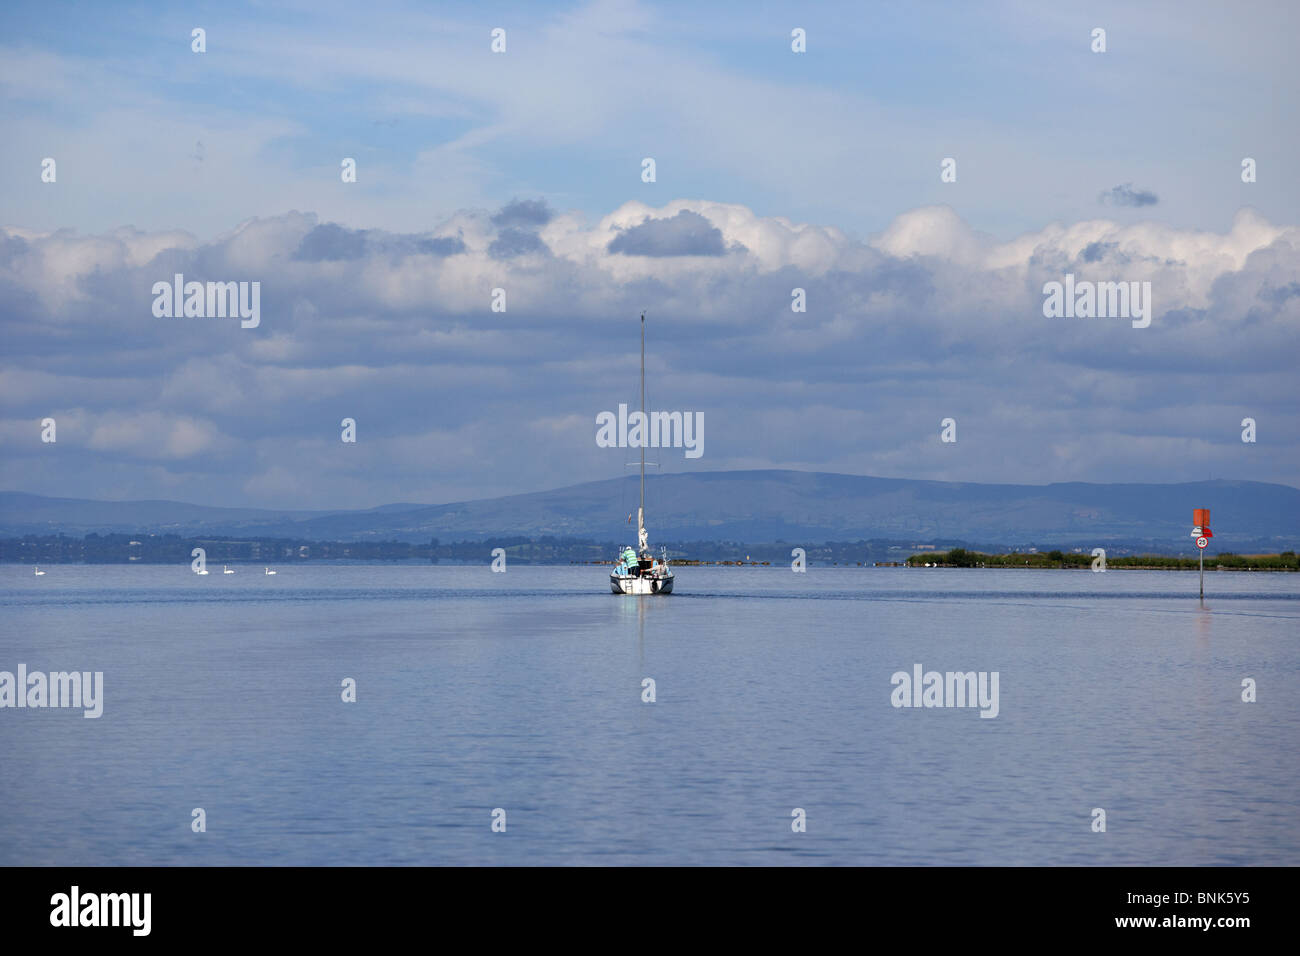 yacht motoring out to set sail on lough neagh northern ireland uk - Stock Image